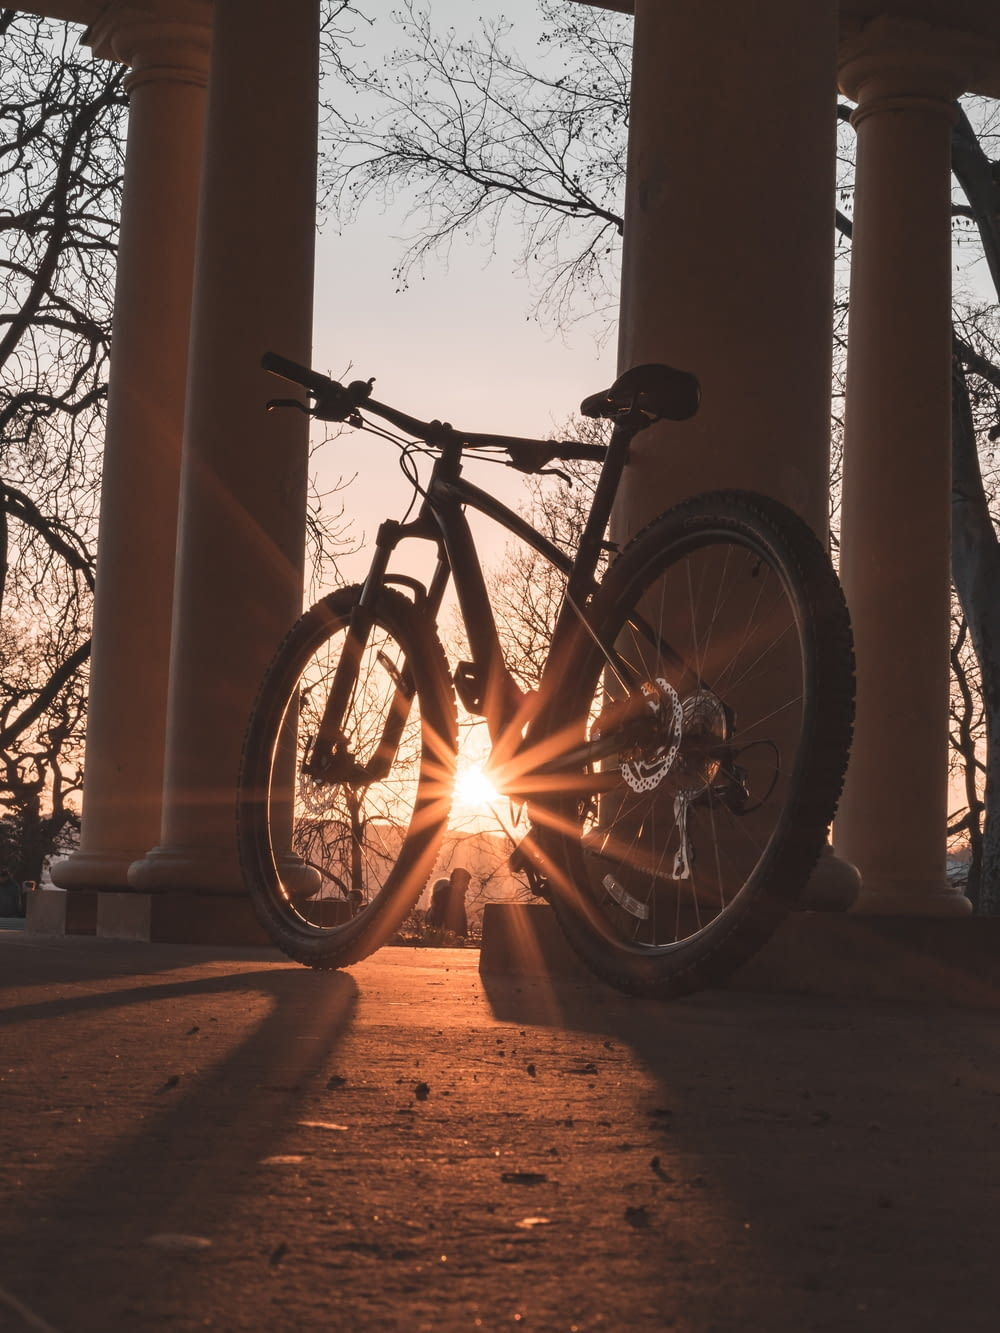 rigid bicycle under sunrays